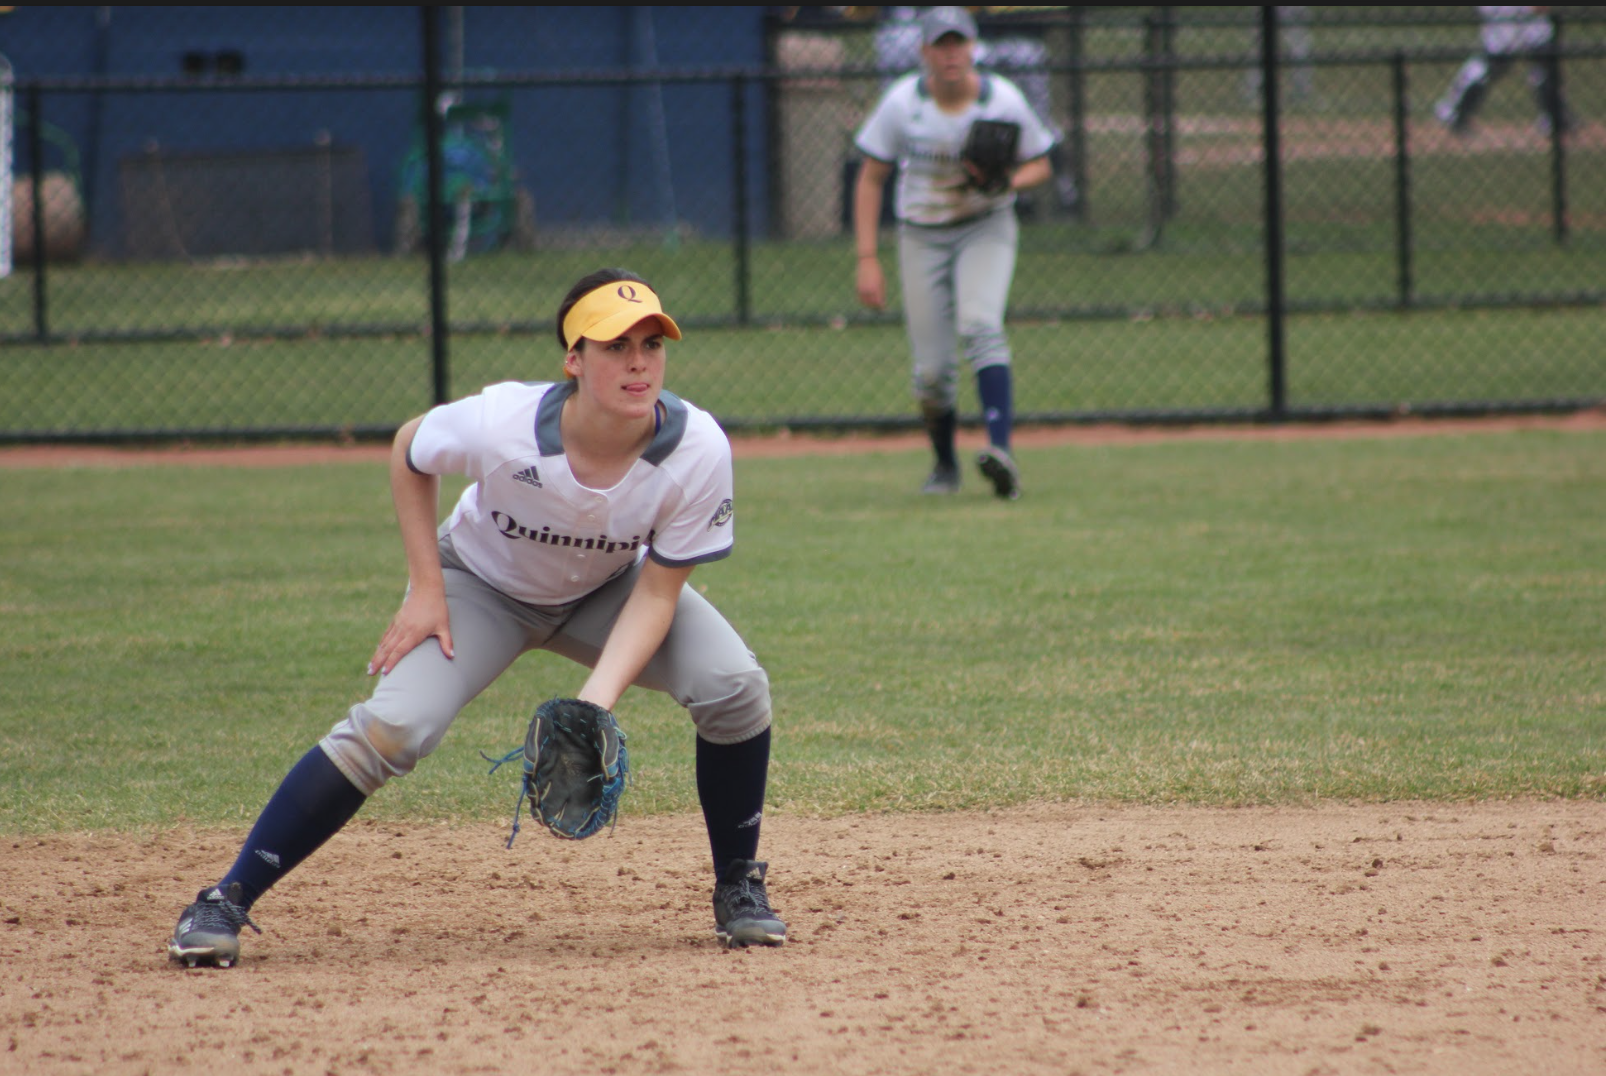 Quinnipiac softball swept by Iona in doubleheader on Friday